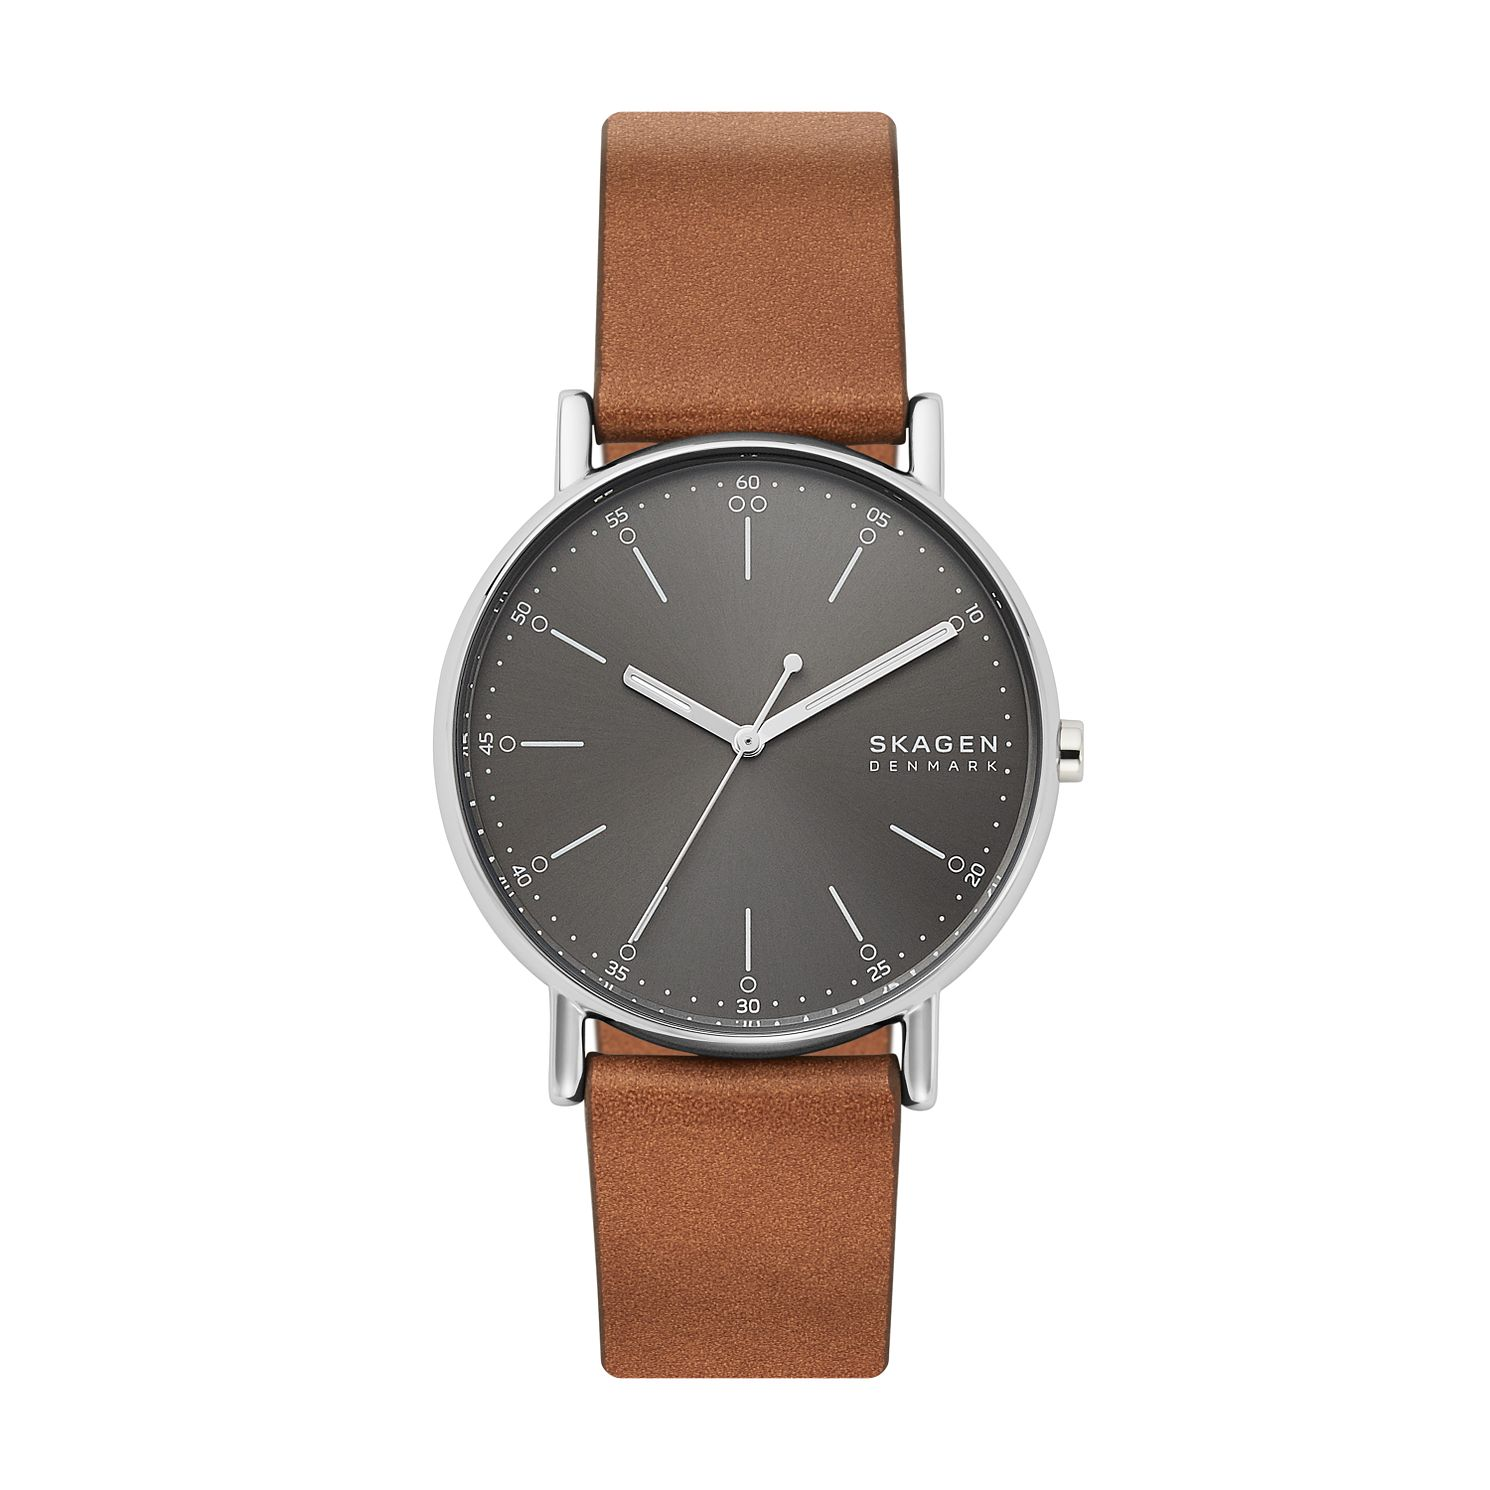 Skagen Signatur Men's Brown Leather Strap Watch - Product number 4012089